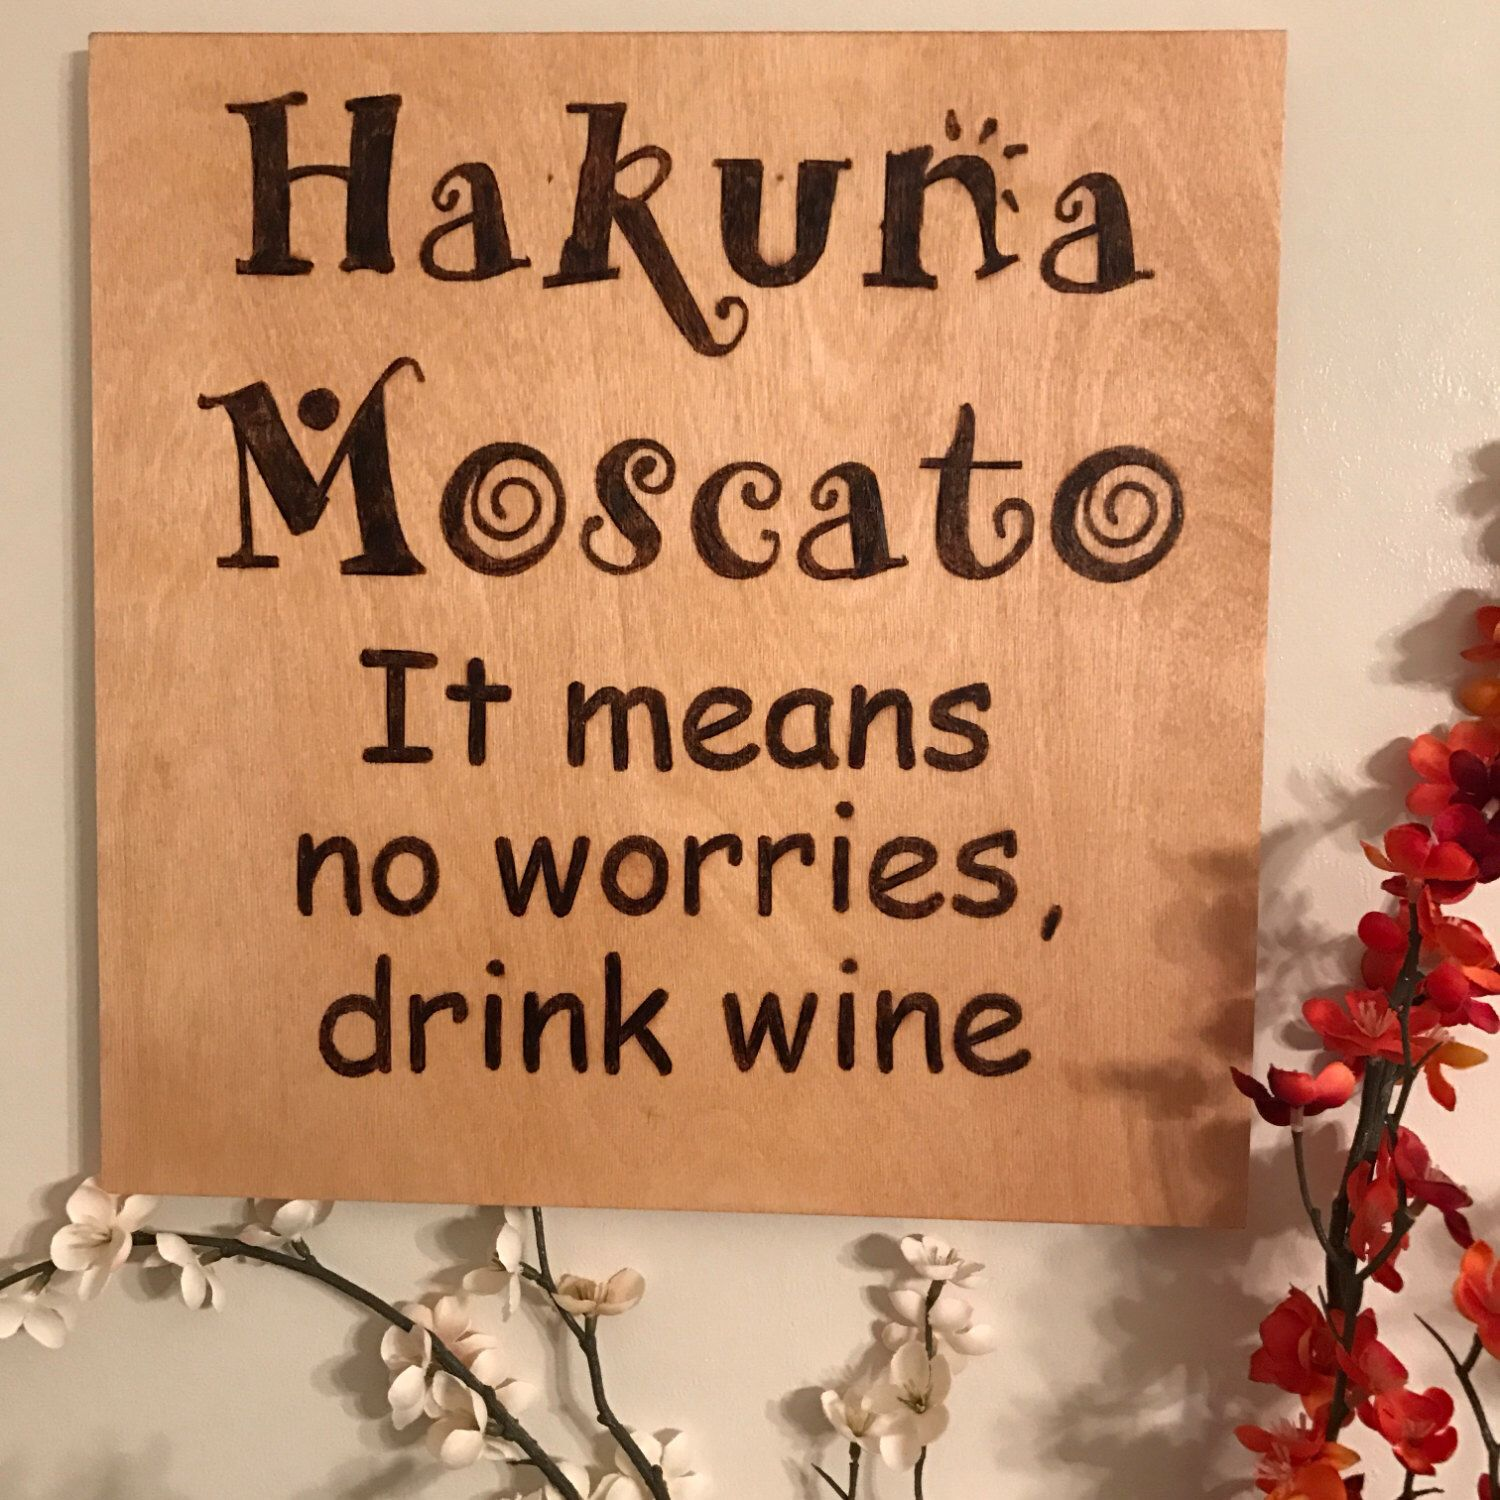 Wine Signs Decor Amazing Hakuna Mascato No Worries Wall Decor Wine Kitchen Sign Bar Sign Design Decoration